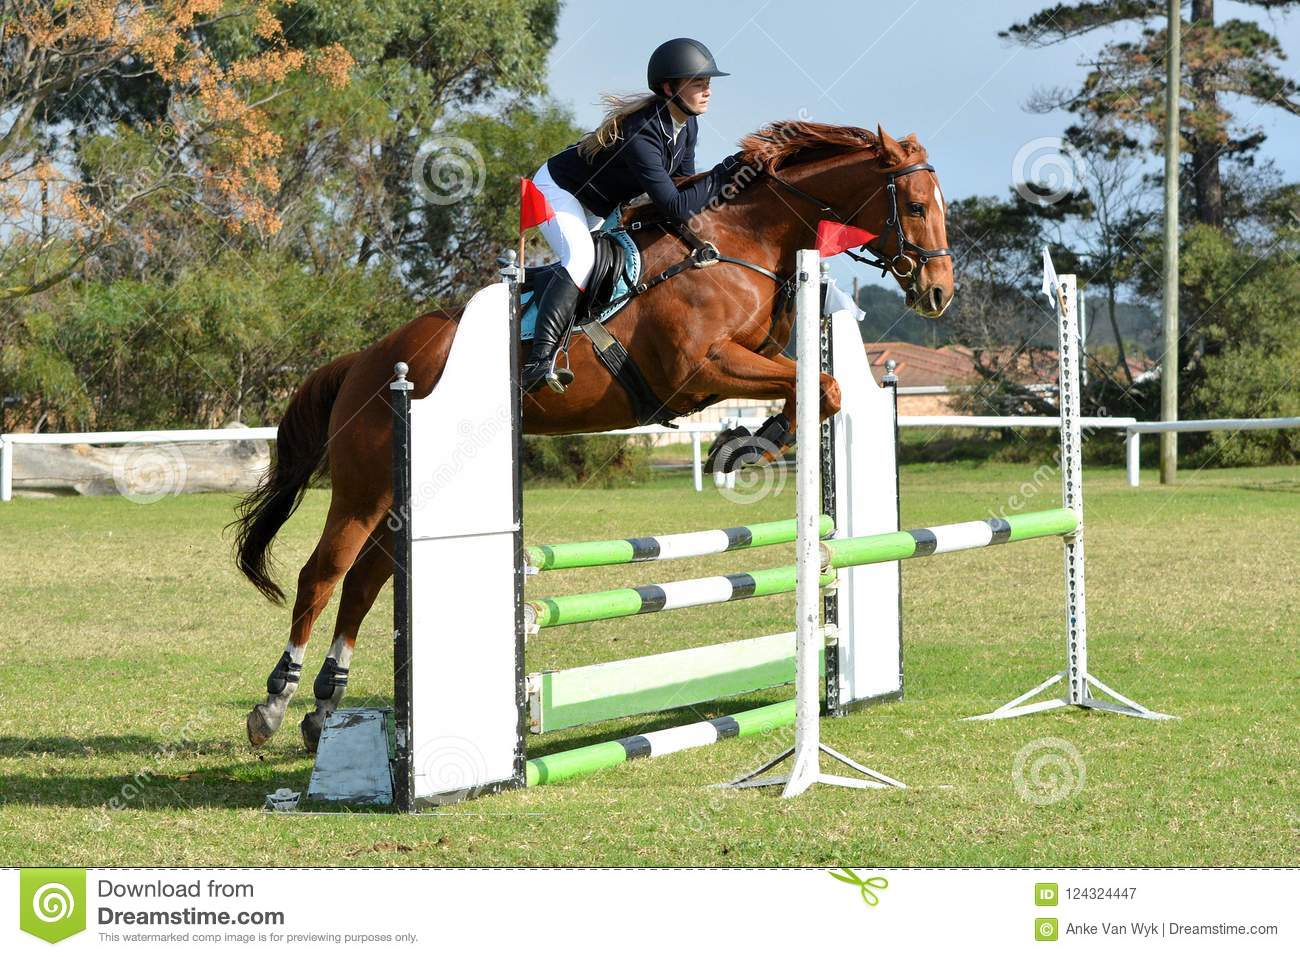 Horse And Rider Show Jumping Stock Image Image Of Horseback Fence 124324447